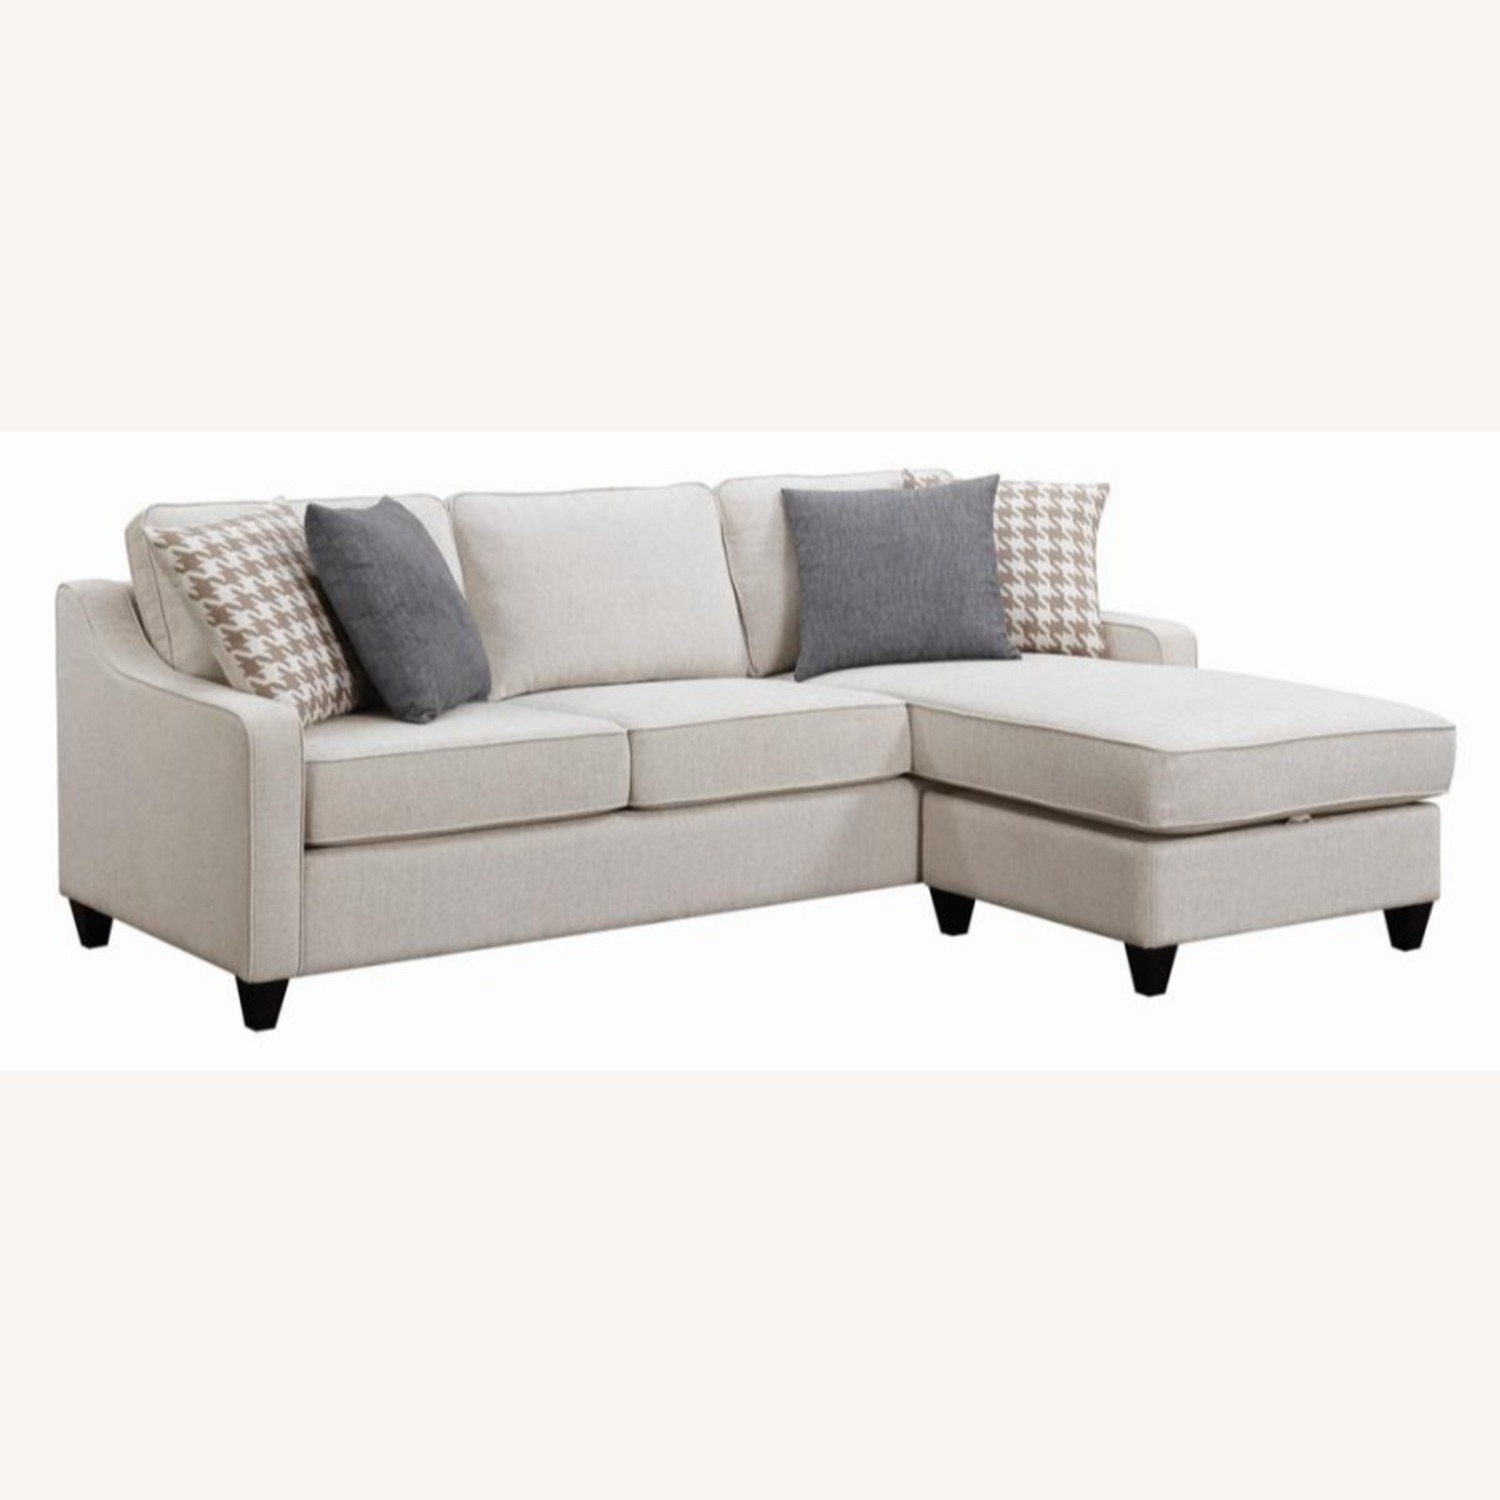 Sectional In Cream Chevron Dobby Upholstery - image-0